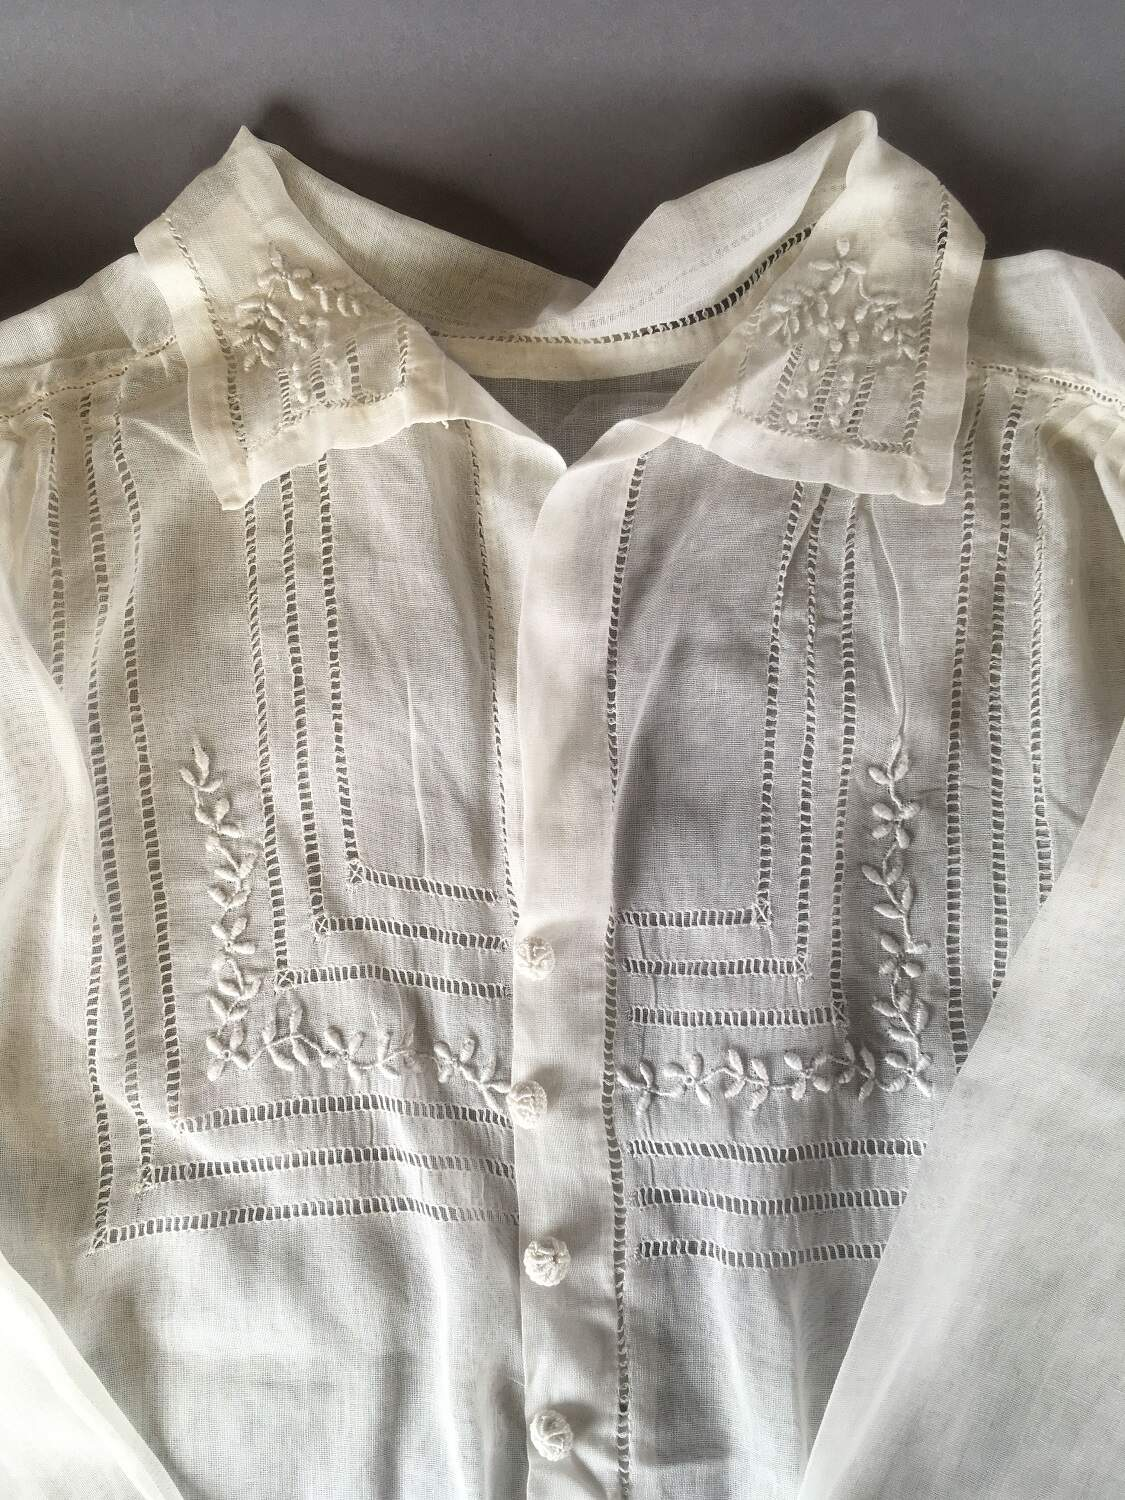 Embroidered blouse by Maud Pentland, completed at the Edinburgh College of Domestic Science, © City of Edinburgh Council Museums & Galleries